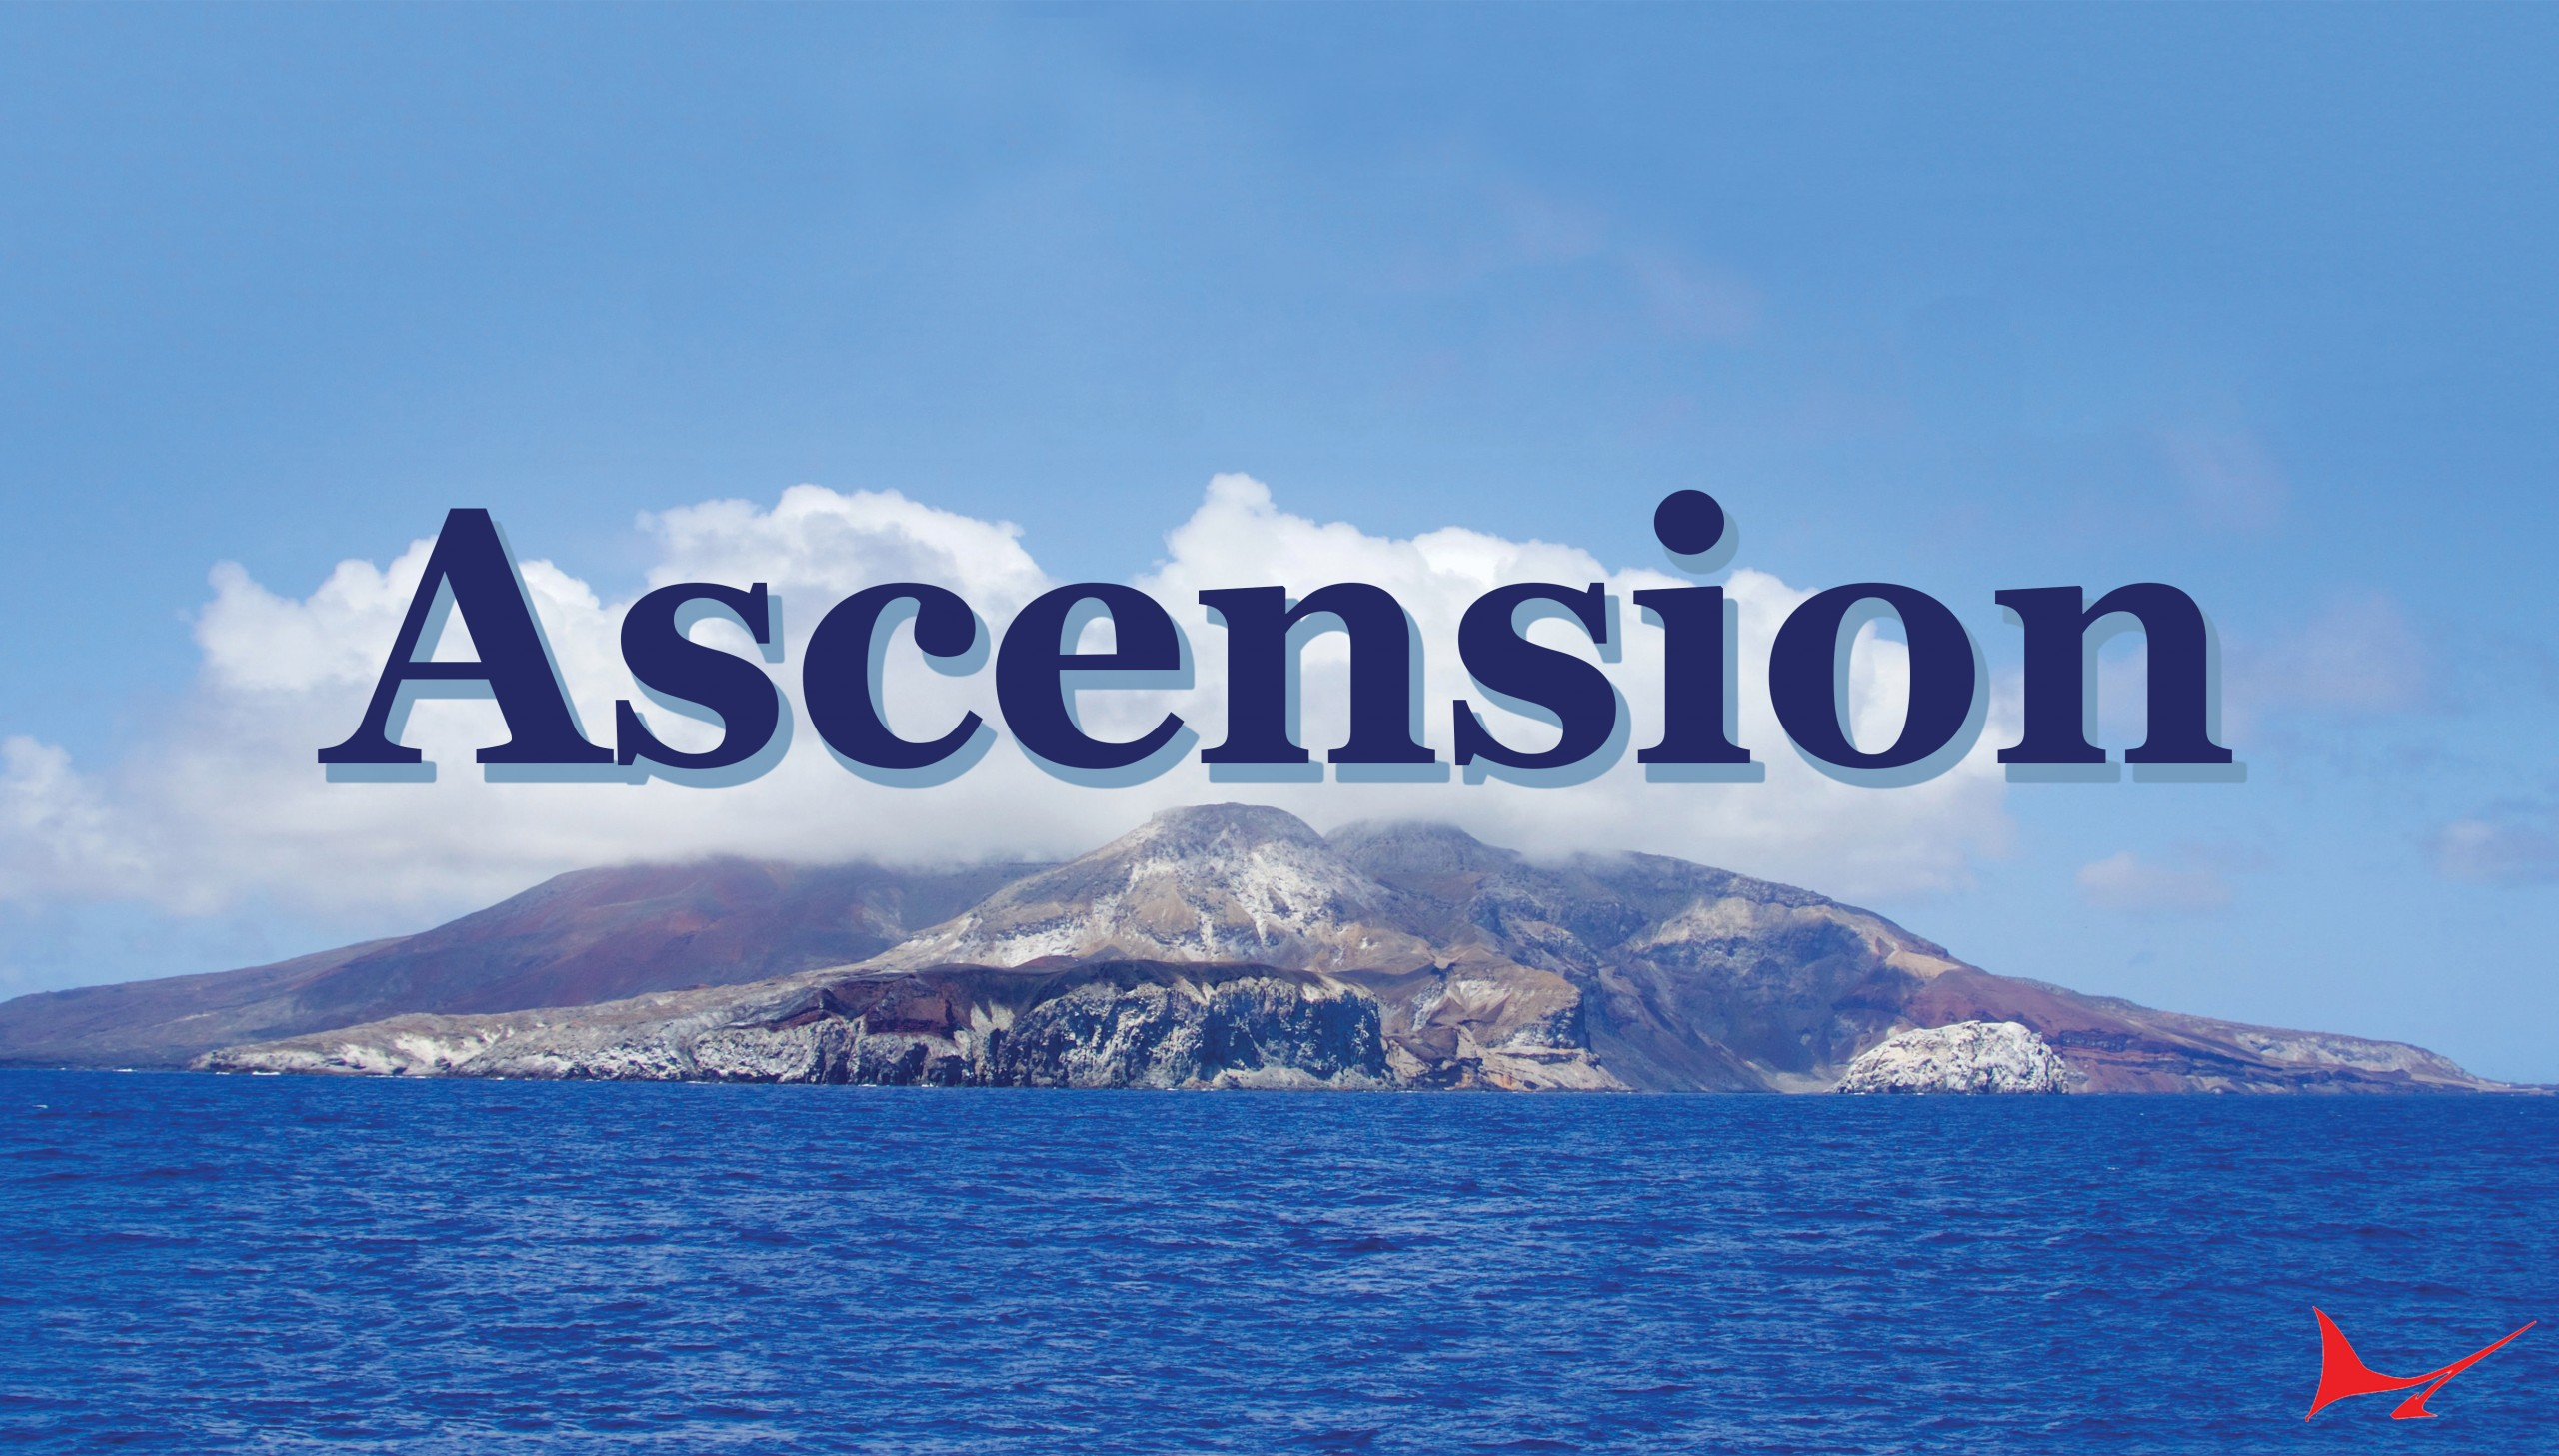 Ascension Island picture of the island with blue water around it